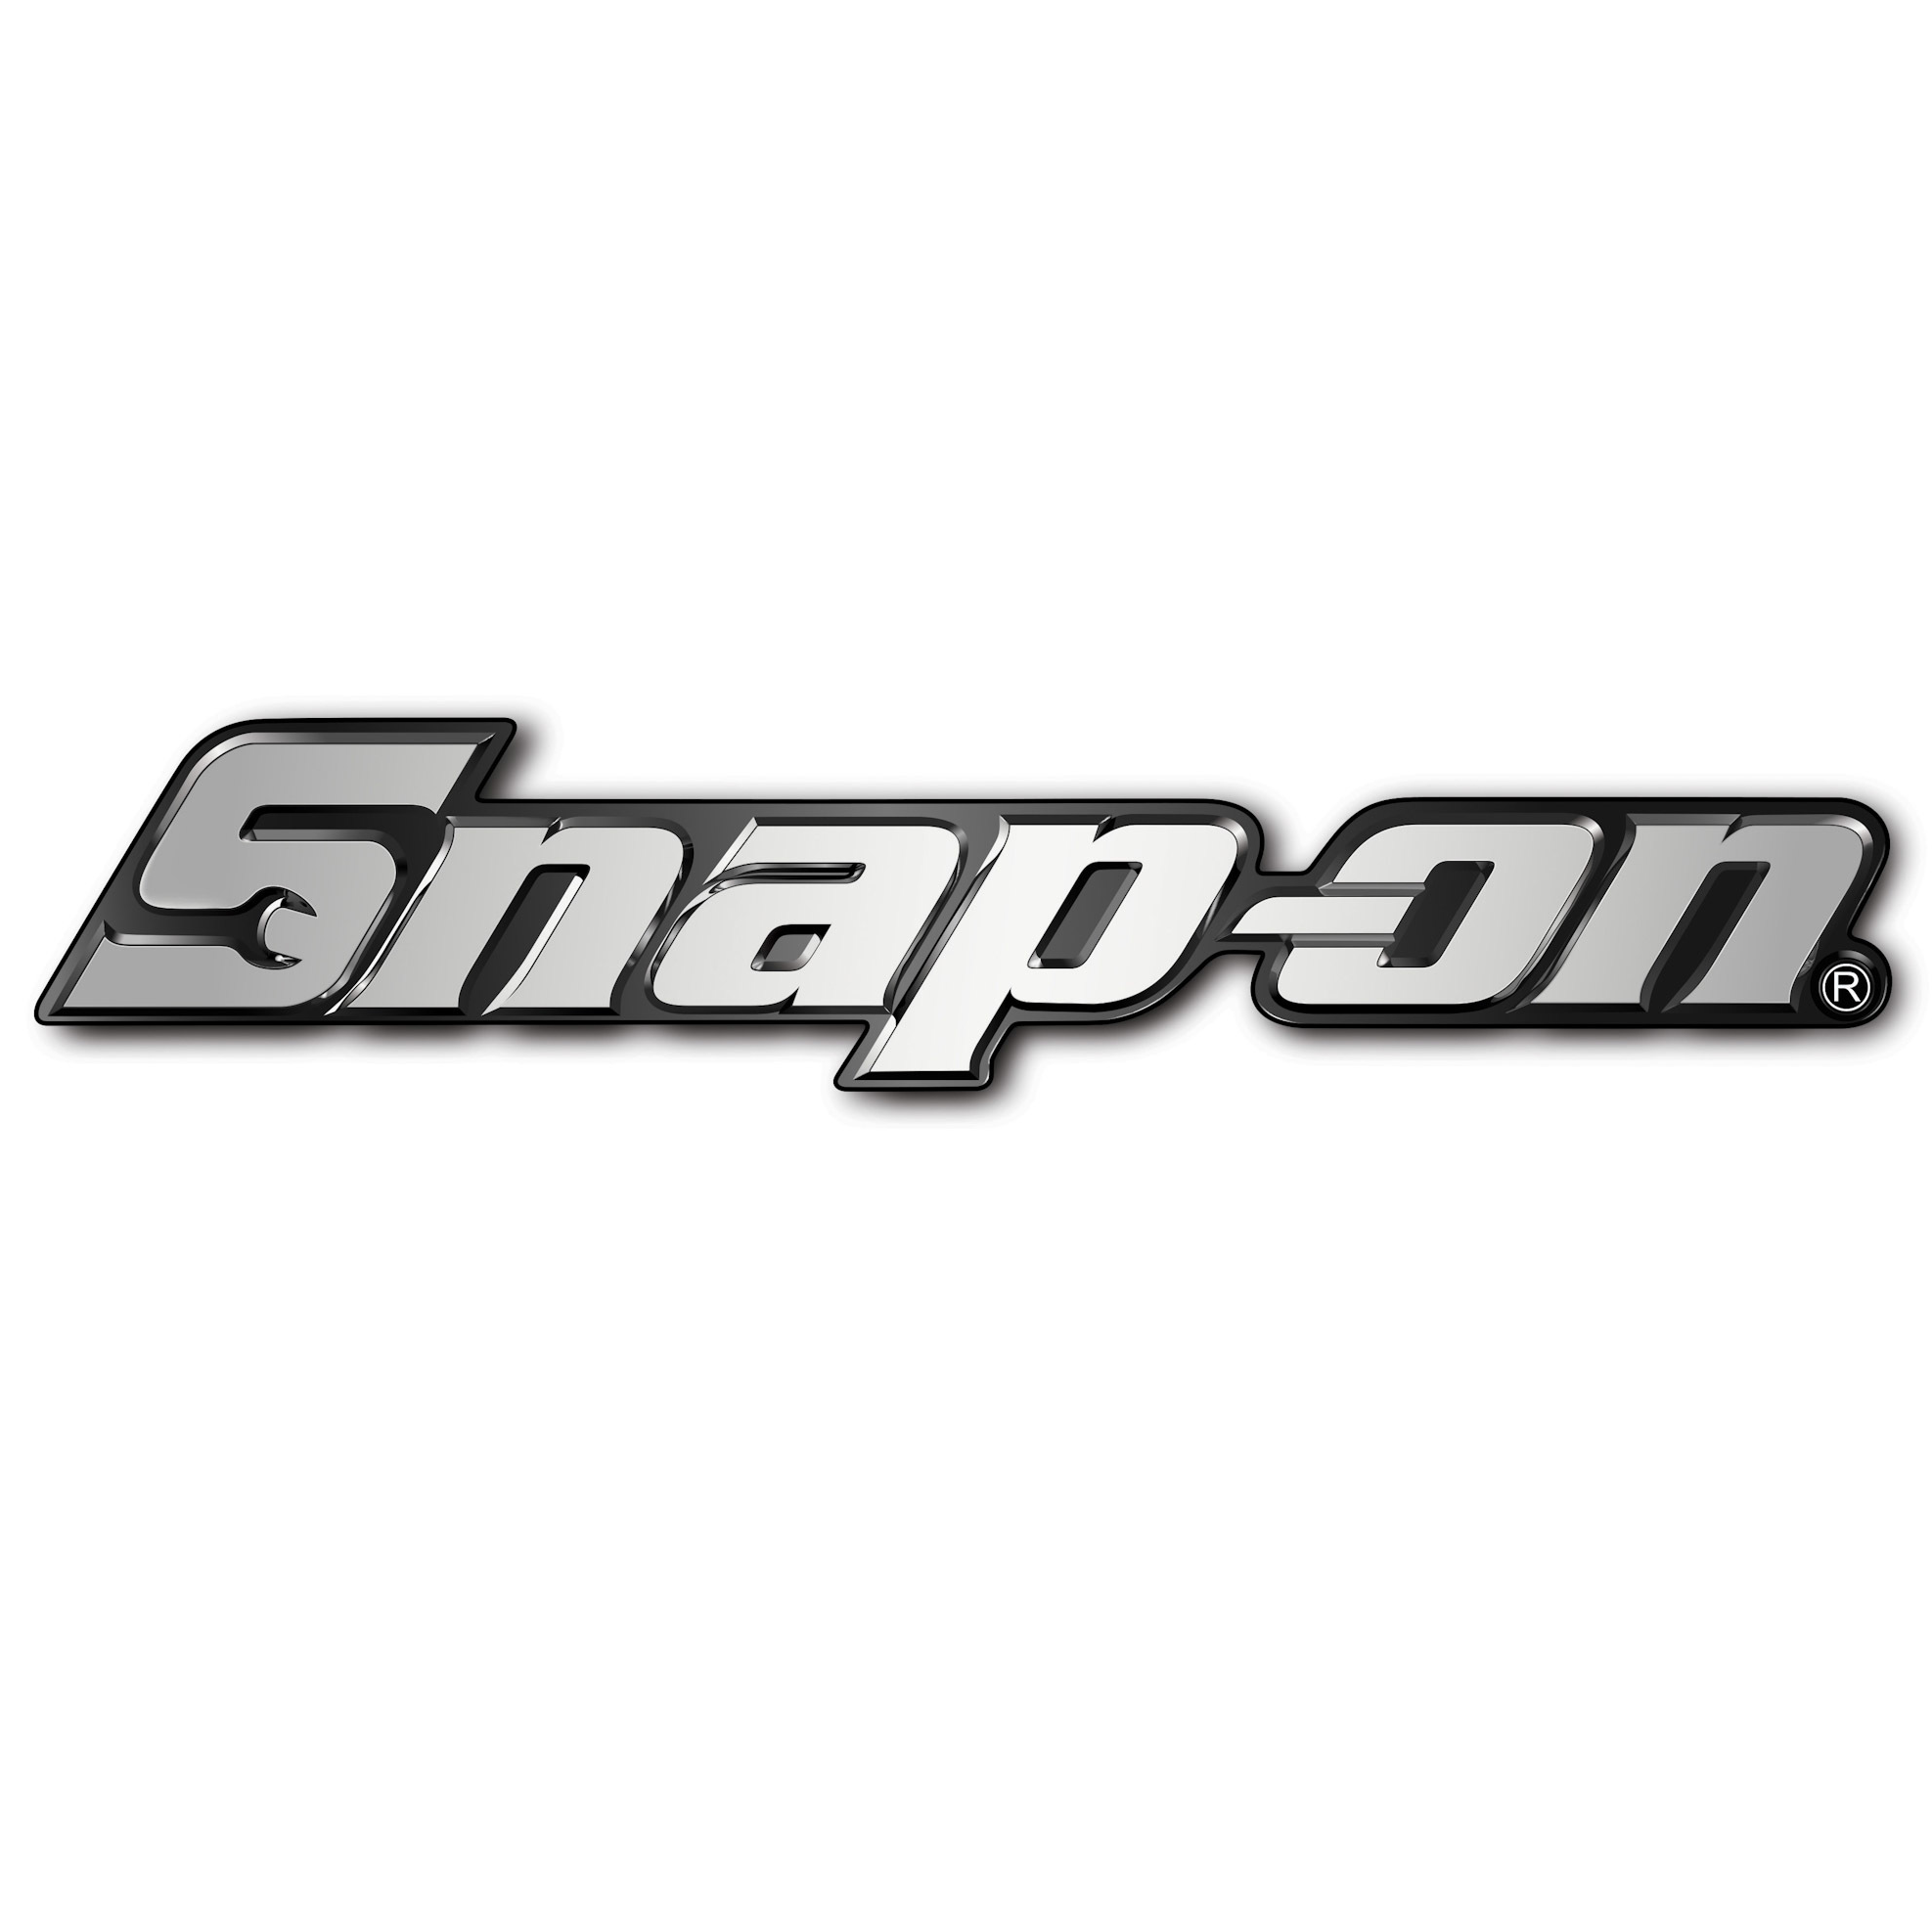 snap on logo.jpg